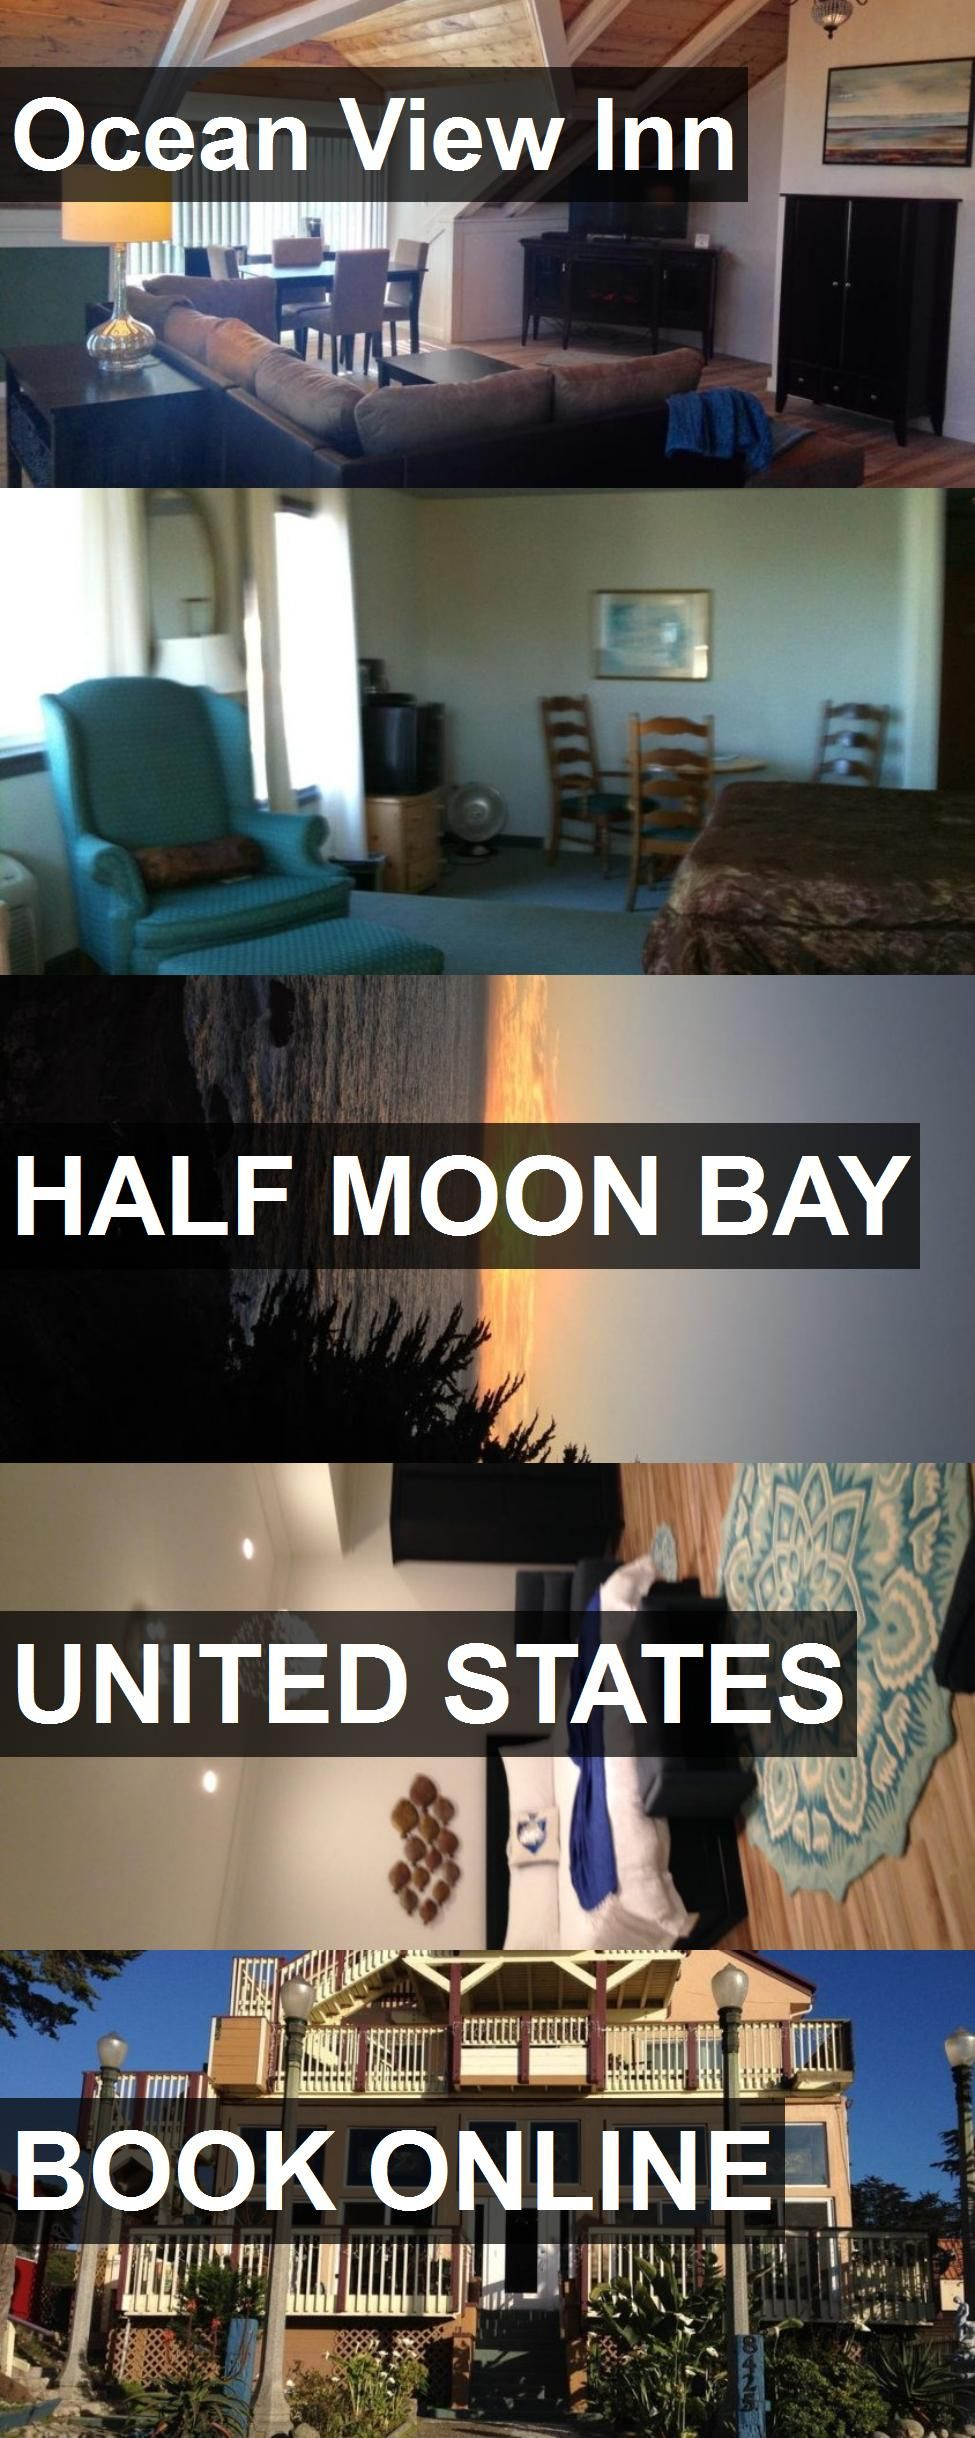 Hotel ocean view inn in half moon bay united states for